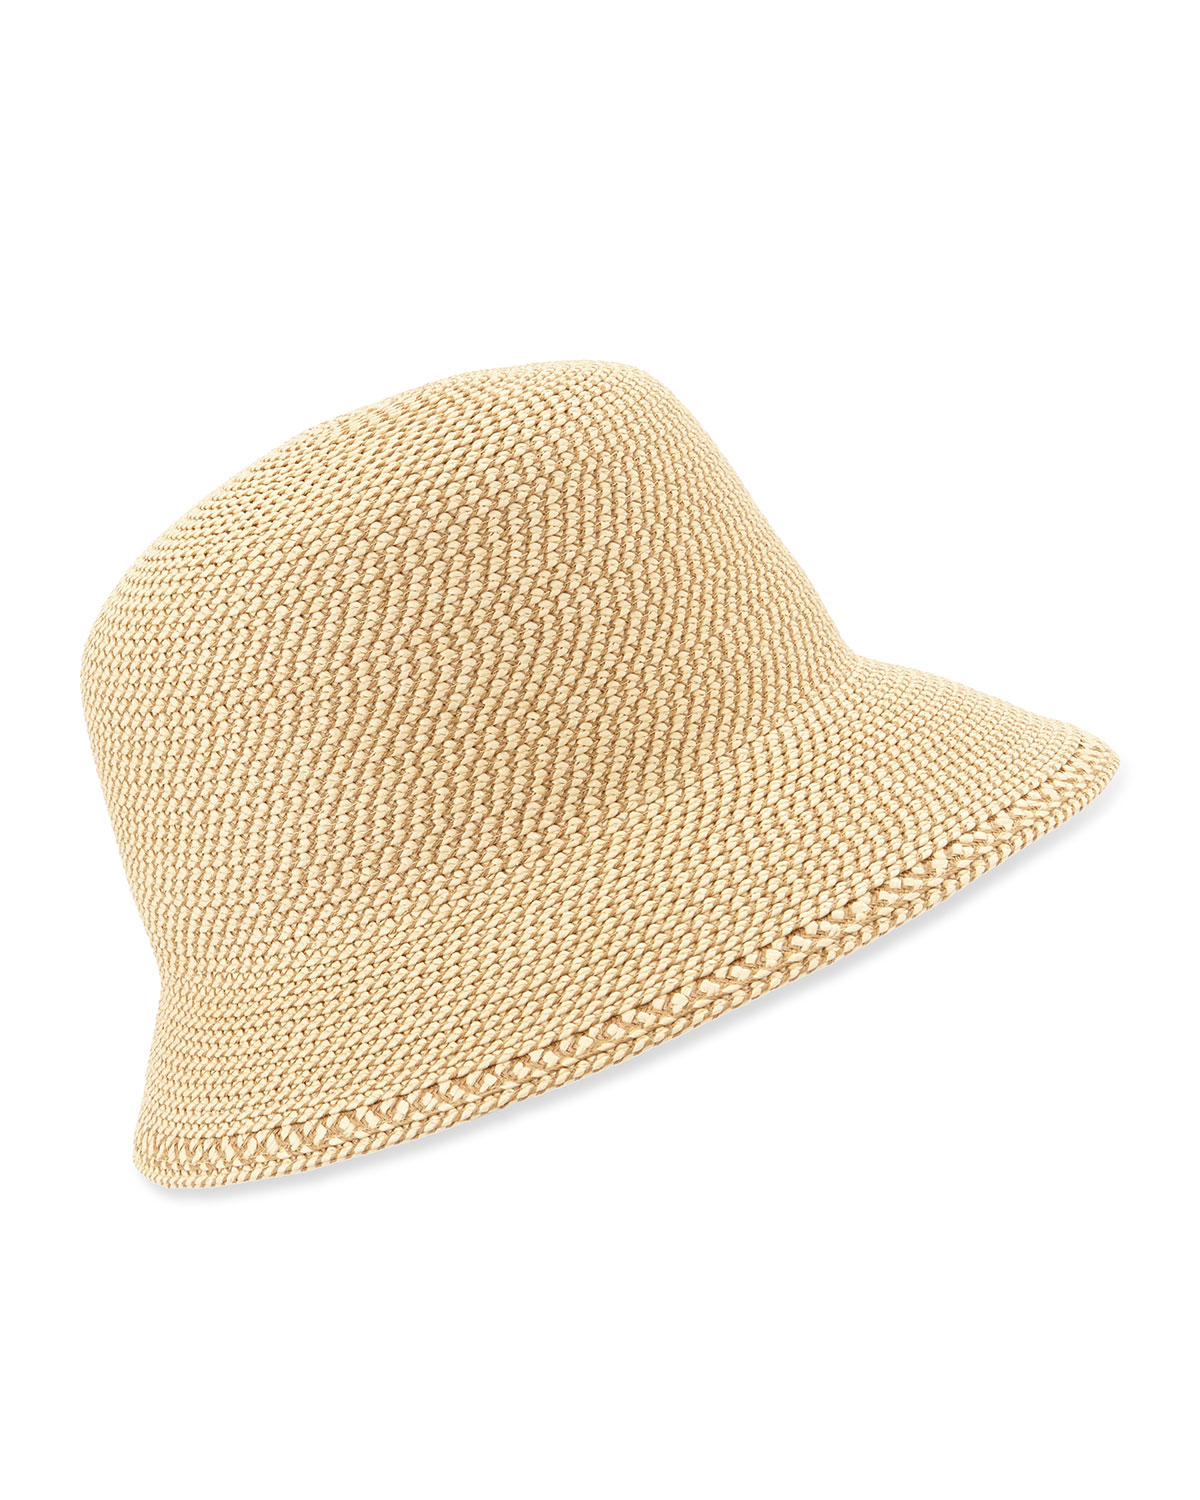 Eric Javits Squishee Bucket Woven Hat in Natural - Lyst f37b934e429